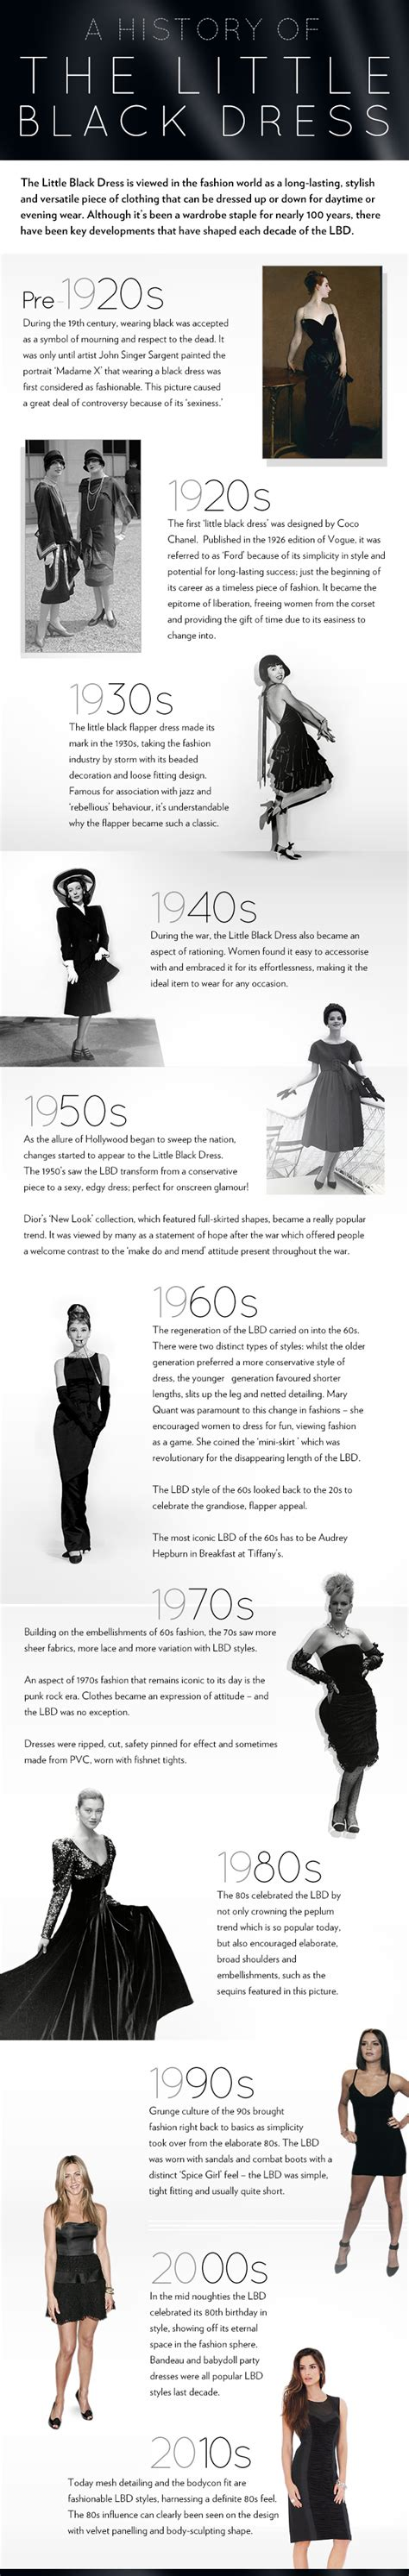 the one hundred years of upson county negro history books 100 years of black dress fashion that will inspire